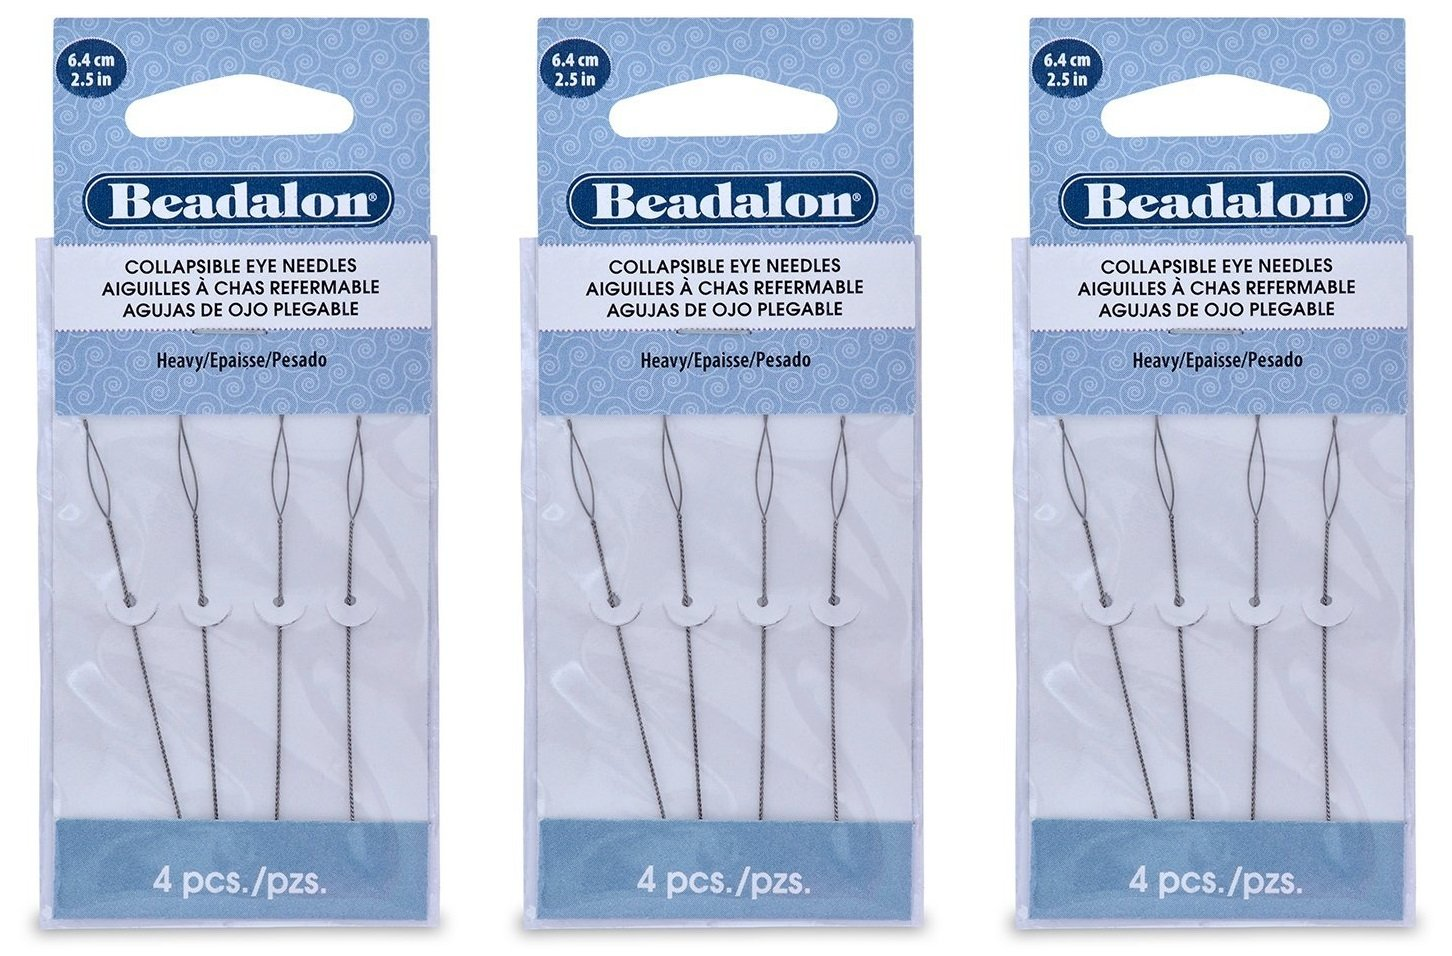 Beadalon Collapsible Eye Needles 2.5-Inch Heavy 4 Pack (3 Pack) Artistic Wire